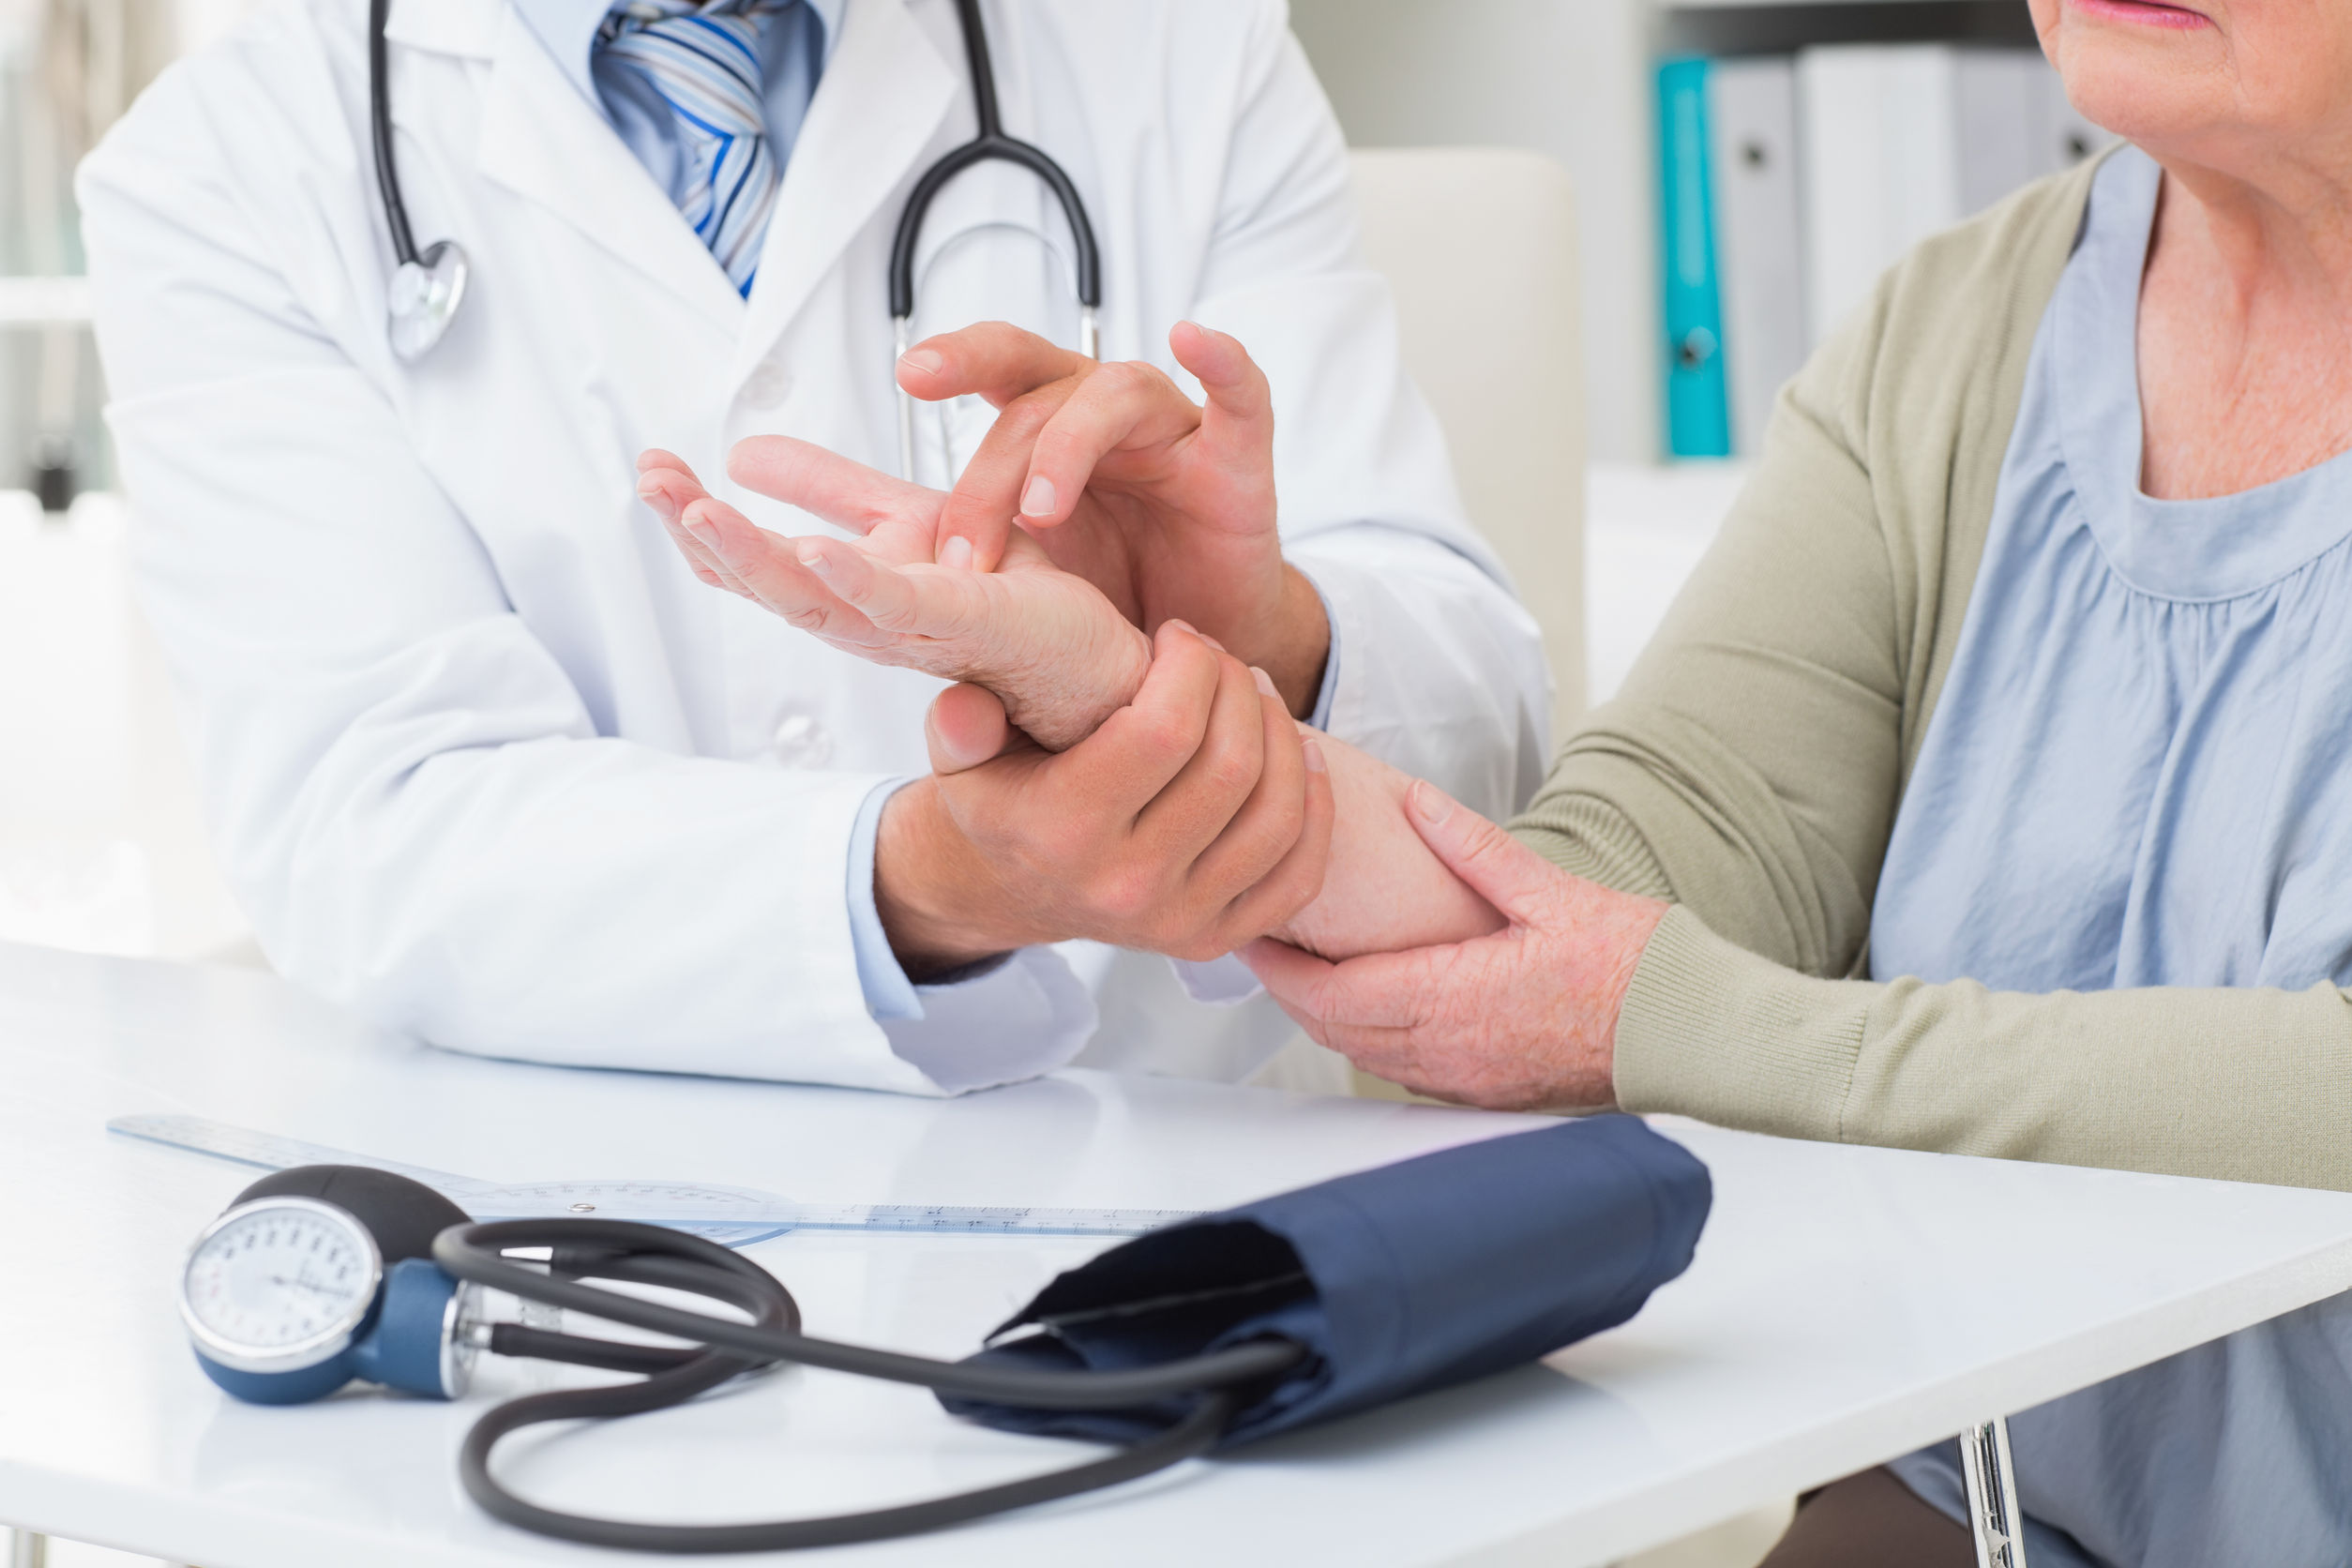 A doctor examining a patient's hand and wrist pain